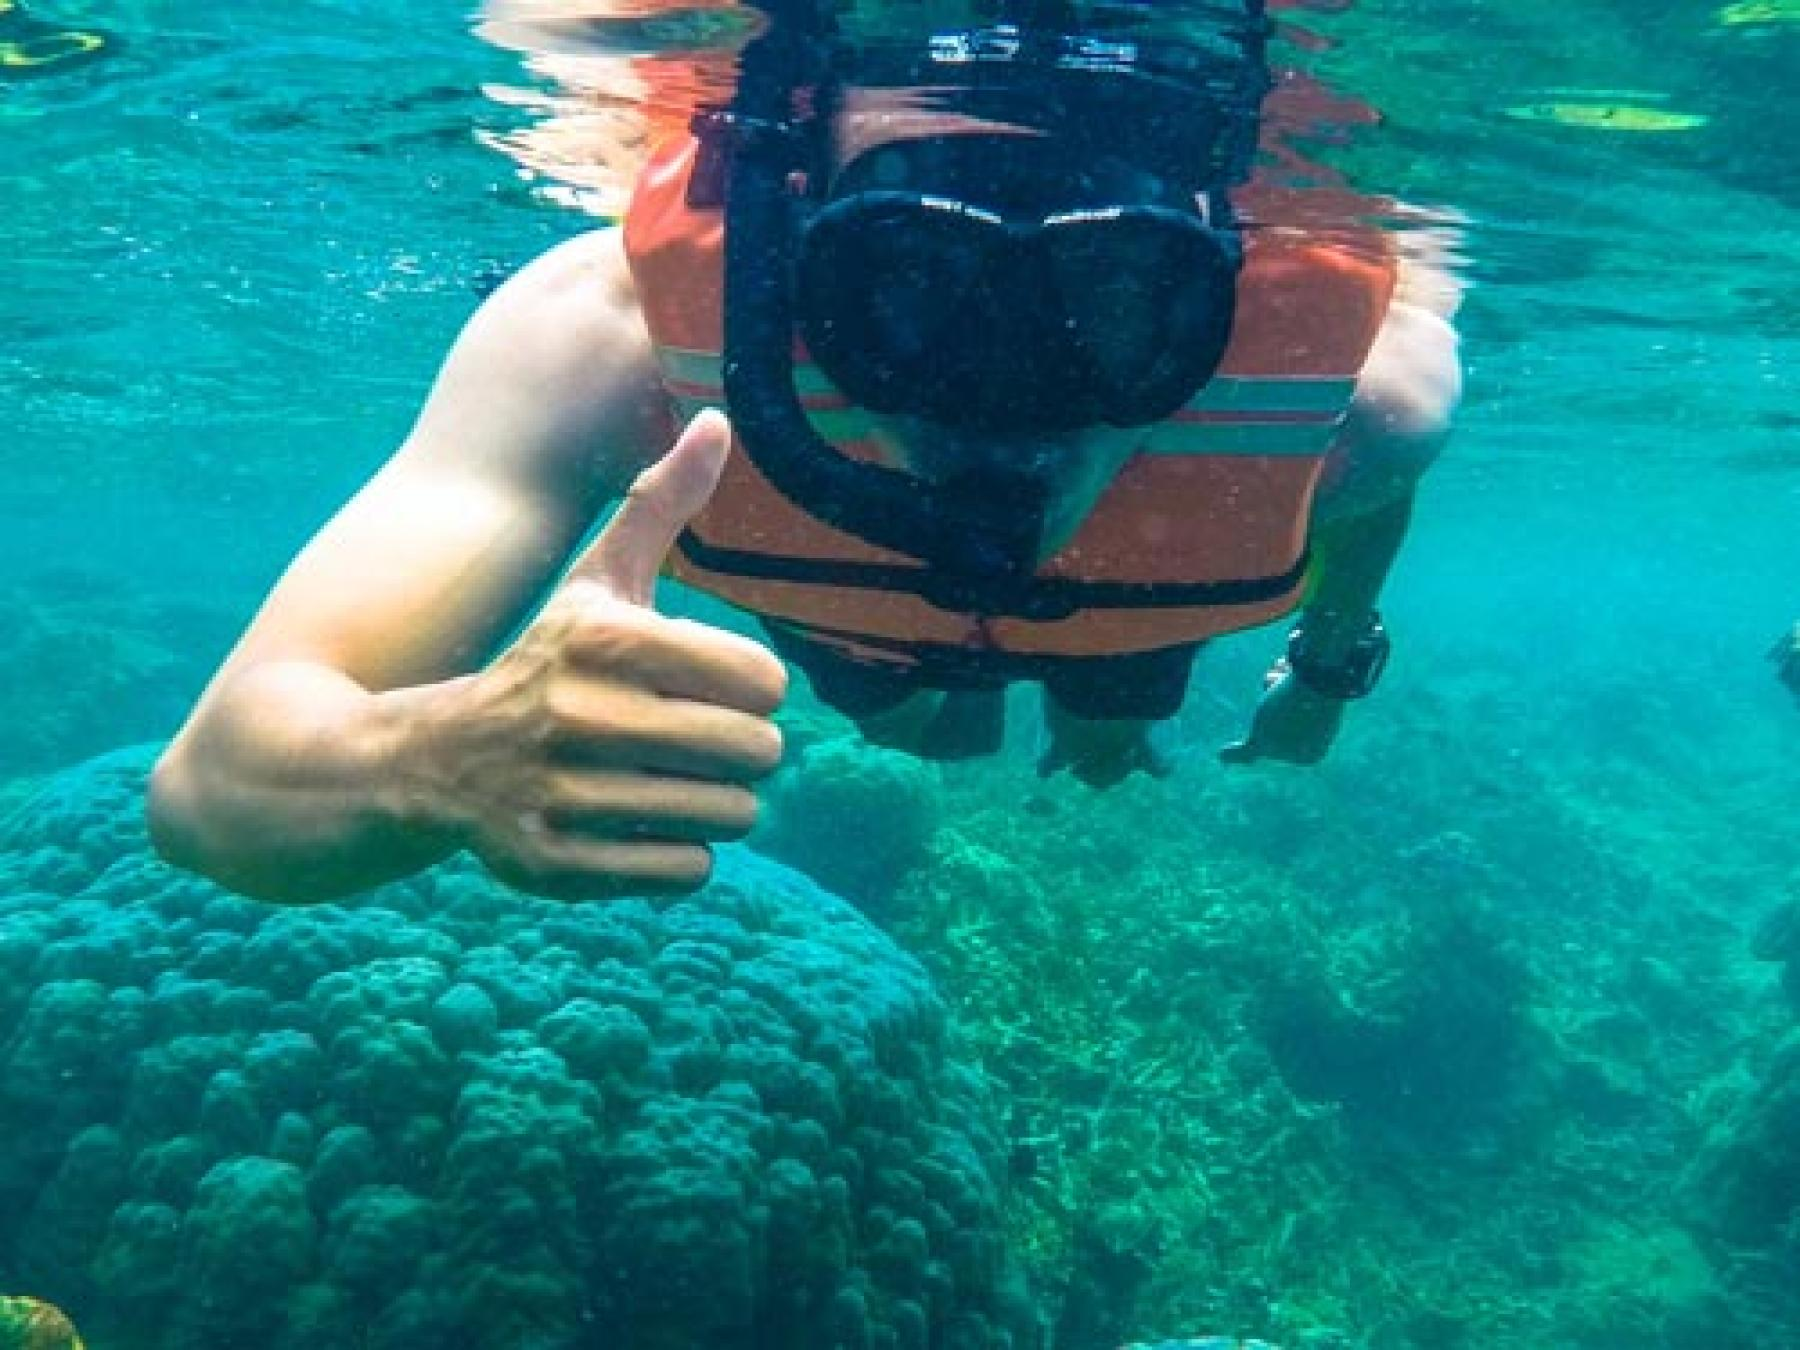 [CONFIRMED] Let's Go Snorkelling in Pulau Seribu (Learning+Sharing Session!) starting at Jakarta, Indonesia